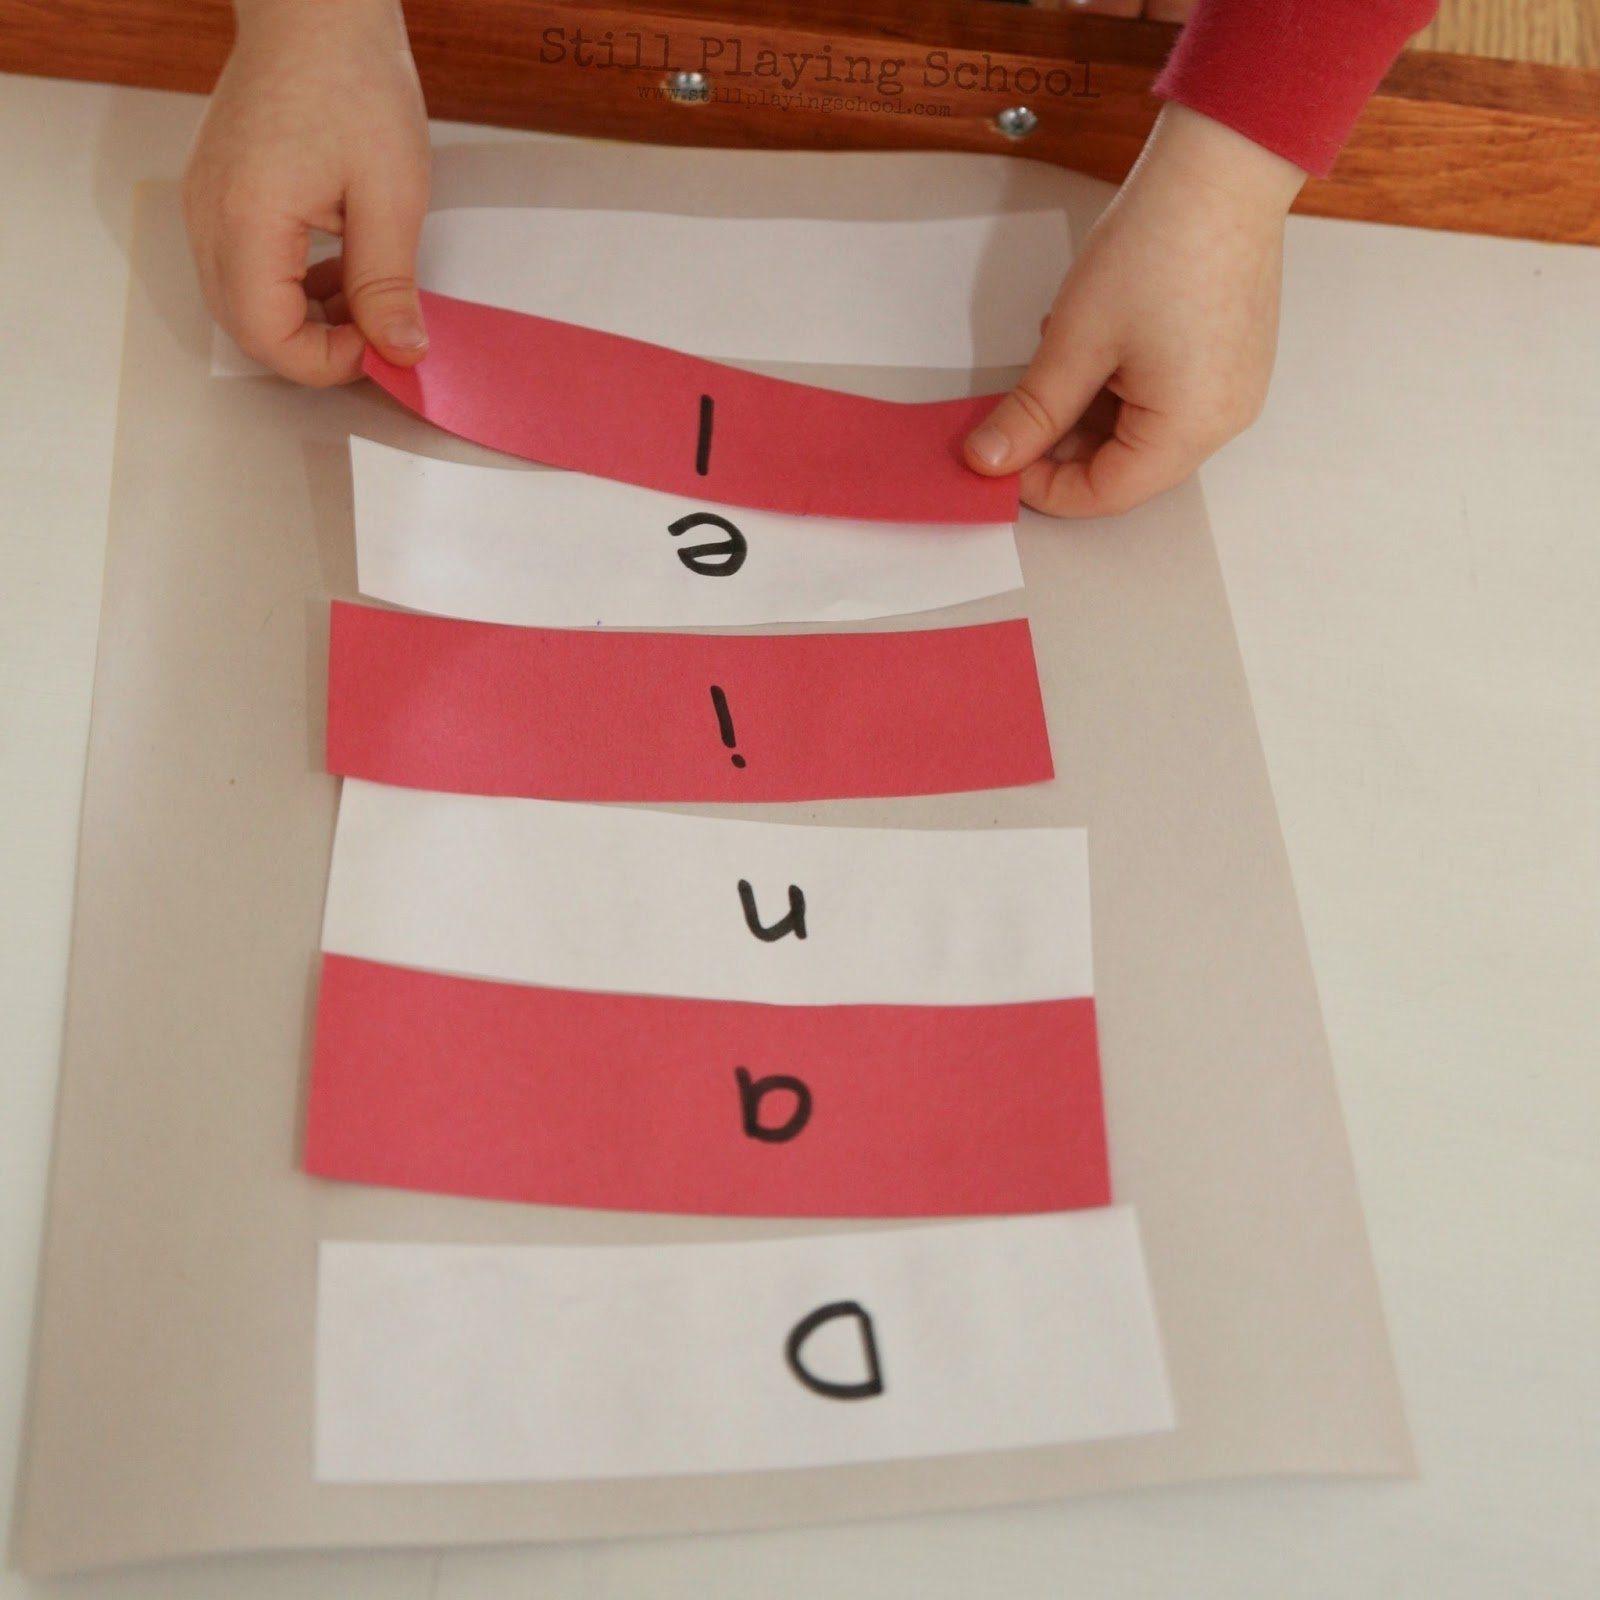 10 Most Popular Cat In The Hat Craft Ideas dr seuss cat in the hat name puzzle craft still playing school